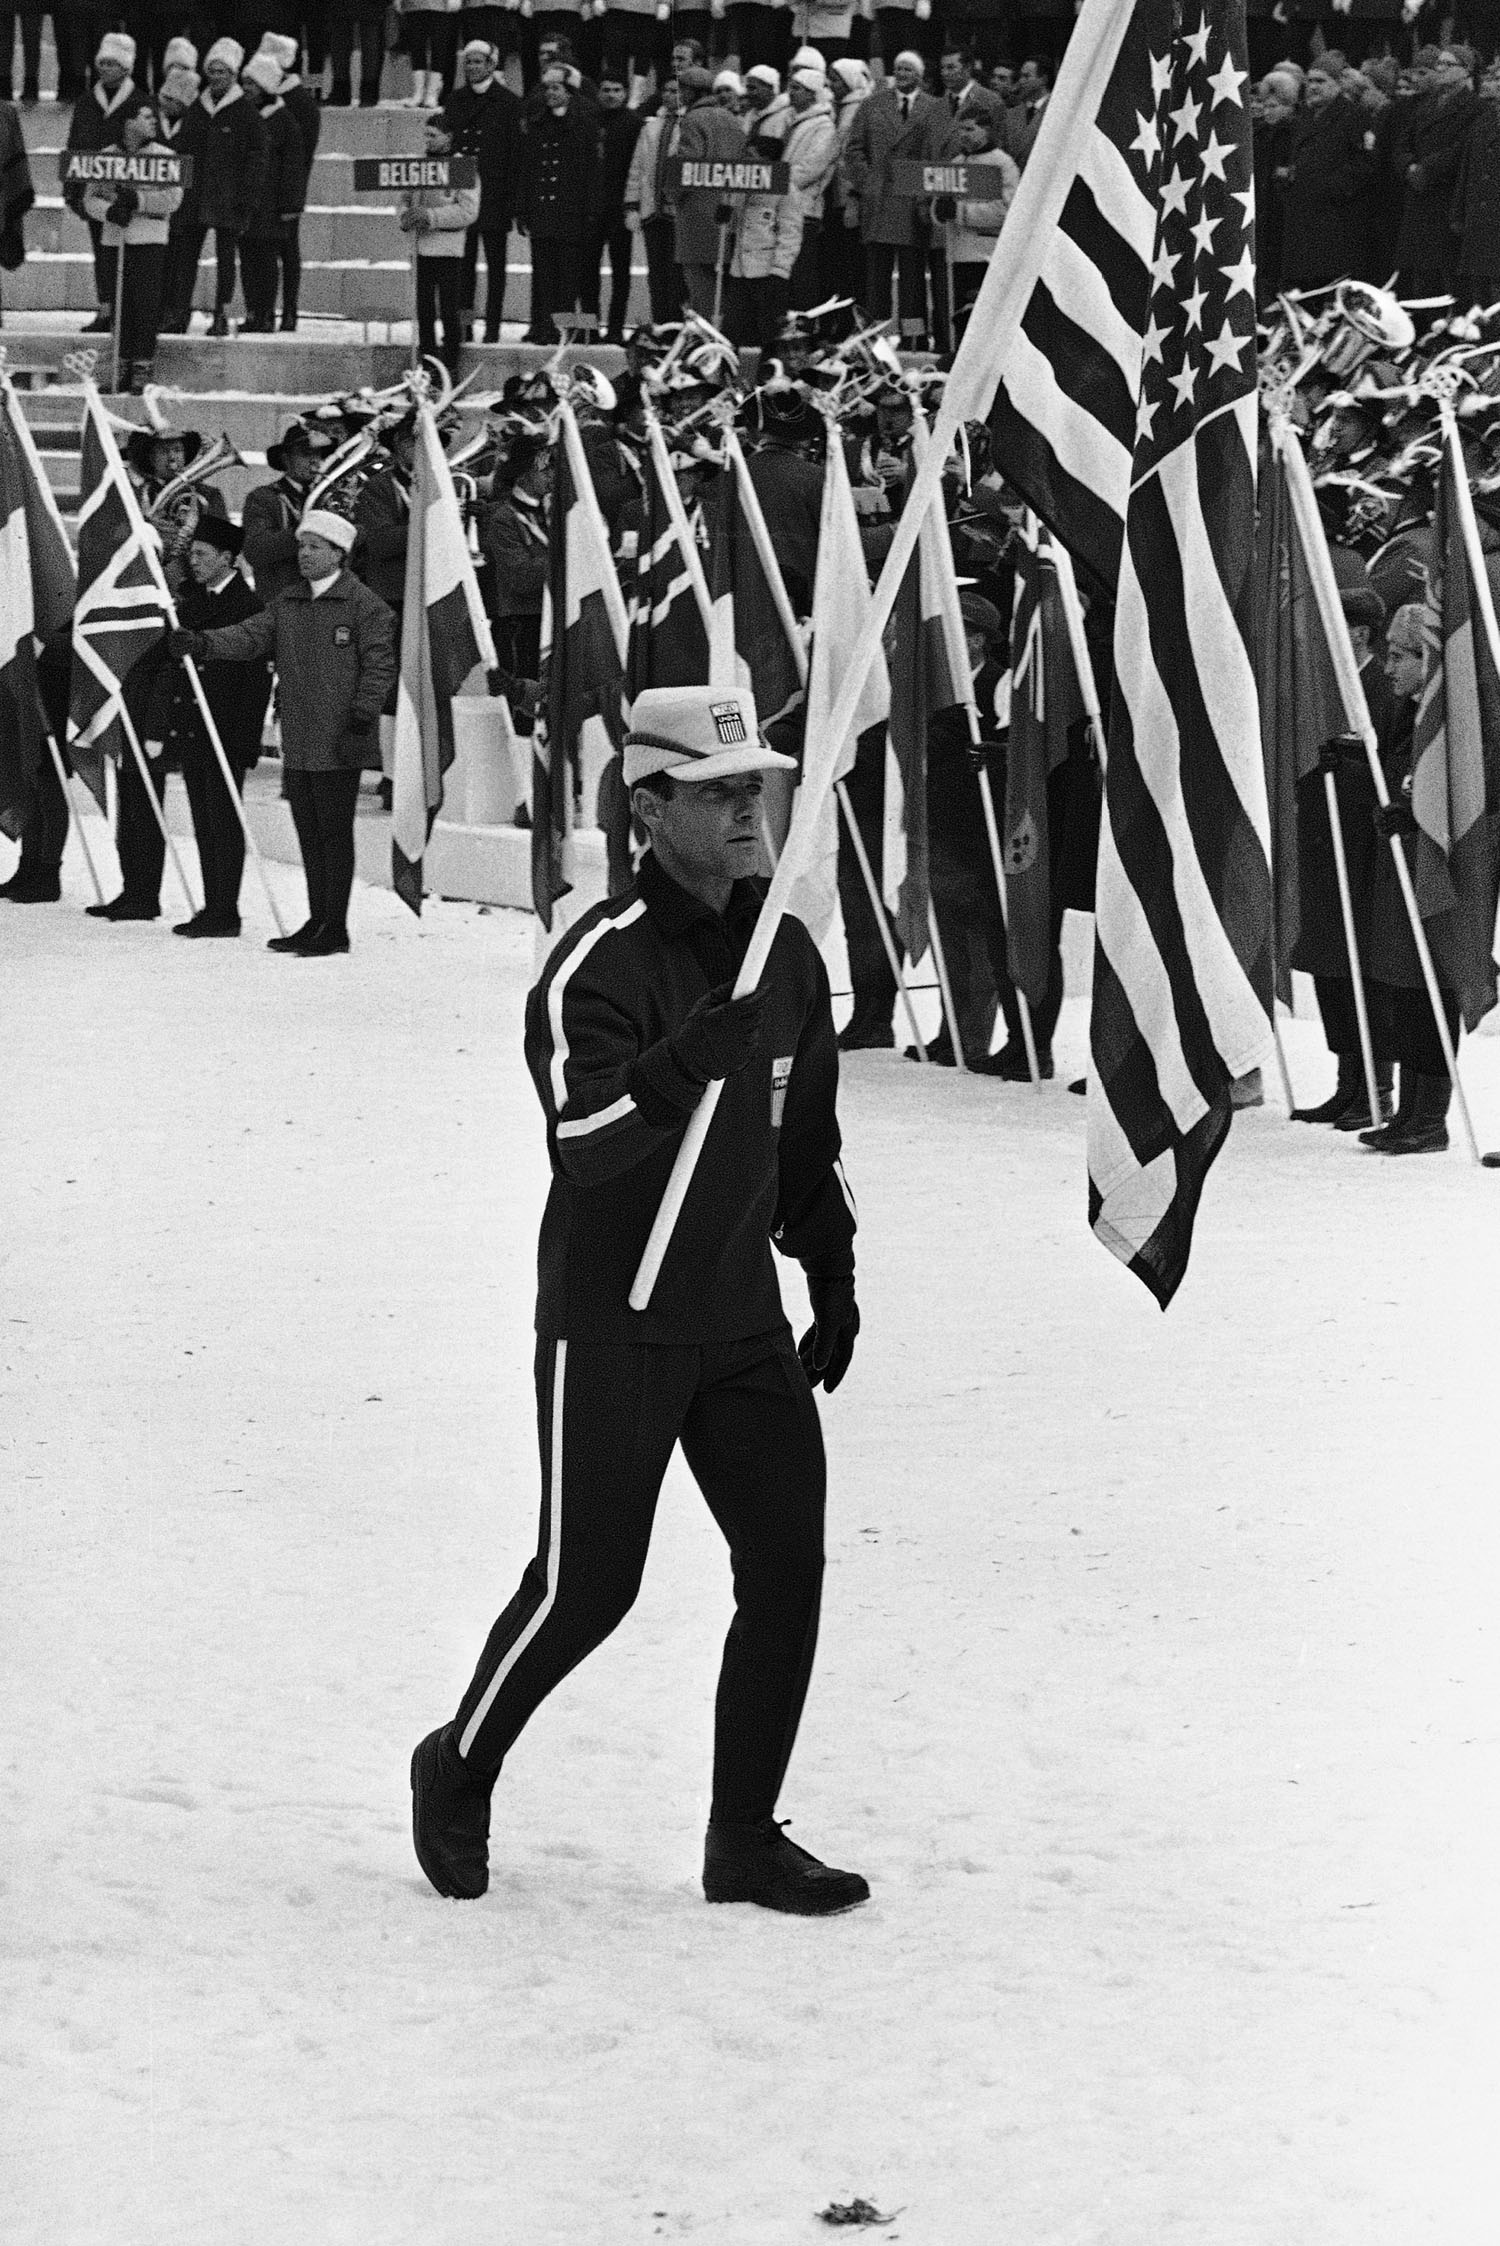 Speedskater Bill Disney carries the flag as he leads his team into the Olympic Ski Stadium at Bergisel for the opening ceremony of the 1964 Winter Olympics in Innsbruck, Austria.